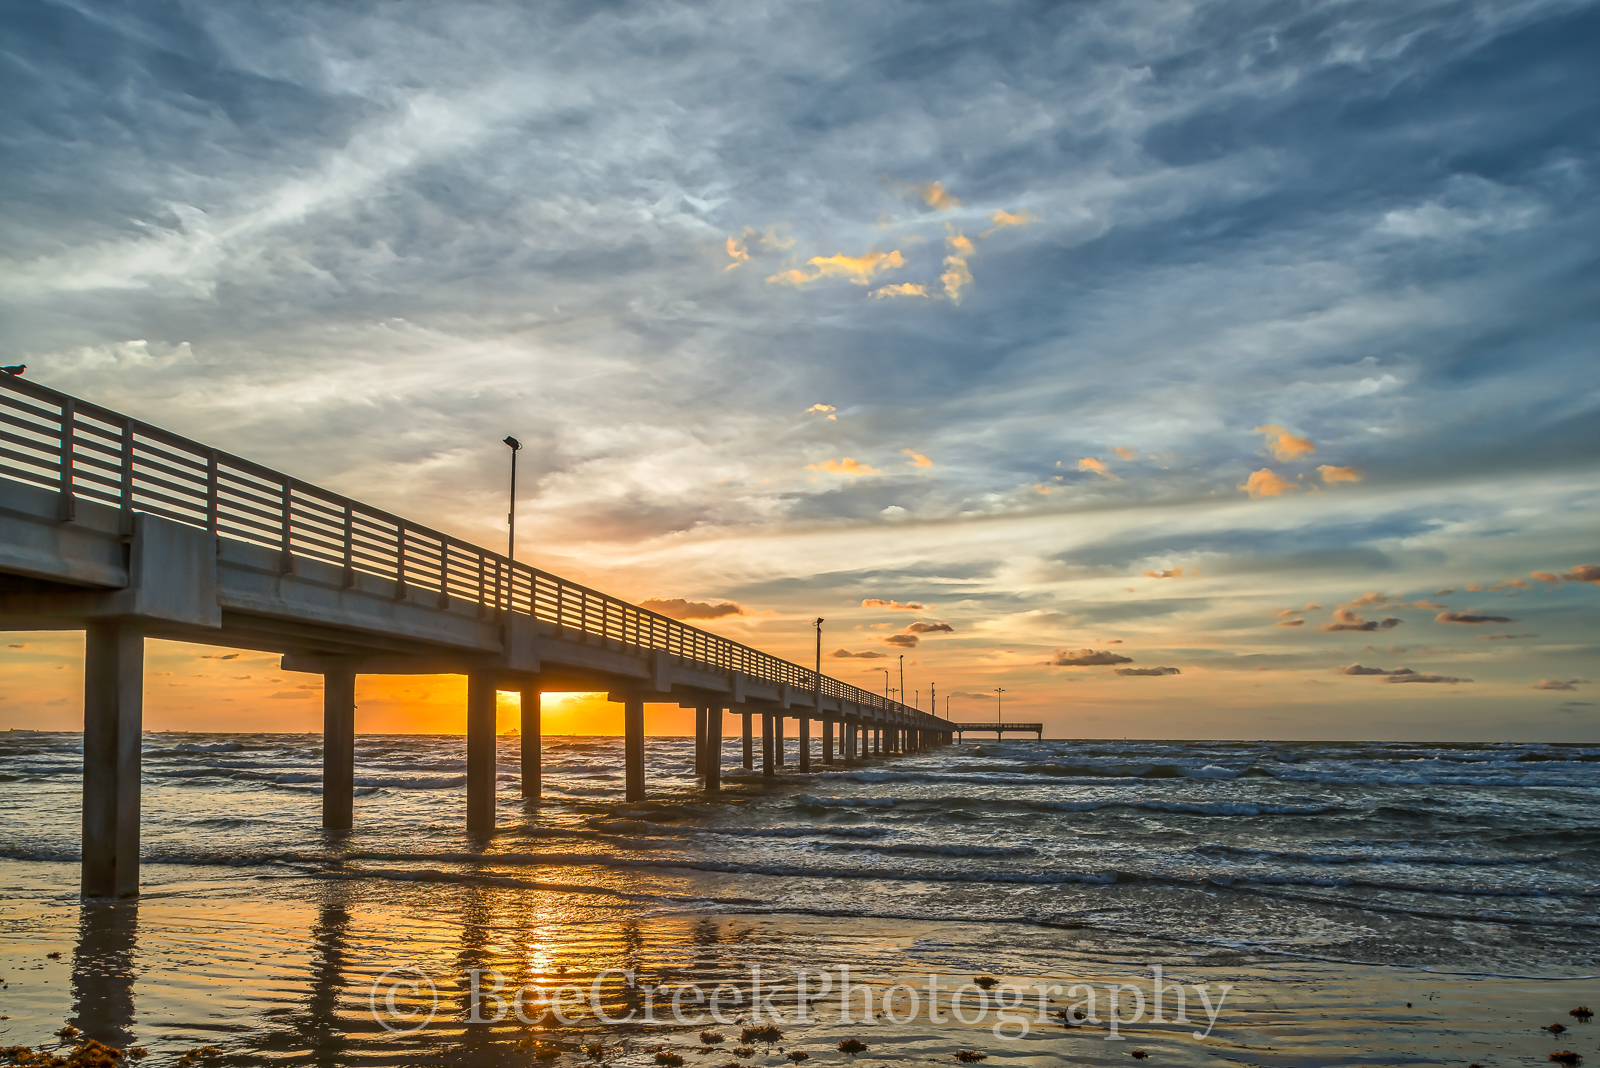 Caldwell pier, pier, Sunrise, Texas Coast, Texas beach, beach, clouds, coastal, fishing, gulf, landscape, landscapes, ocean, sea, seascape, shore sand, surf, texas, waves, beach scene, , photo